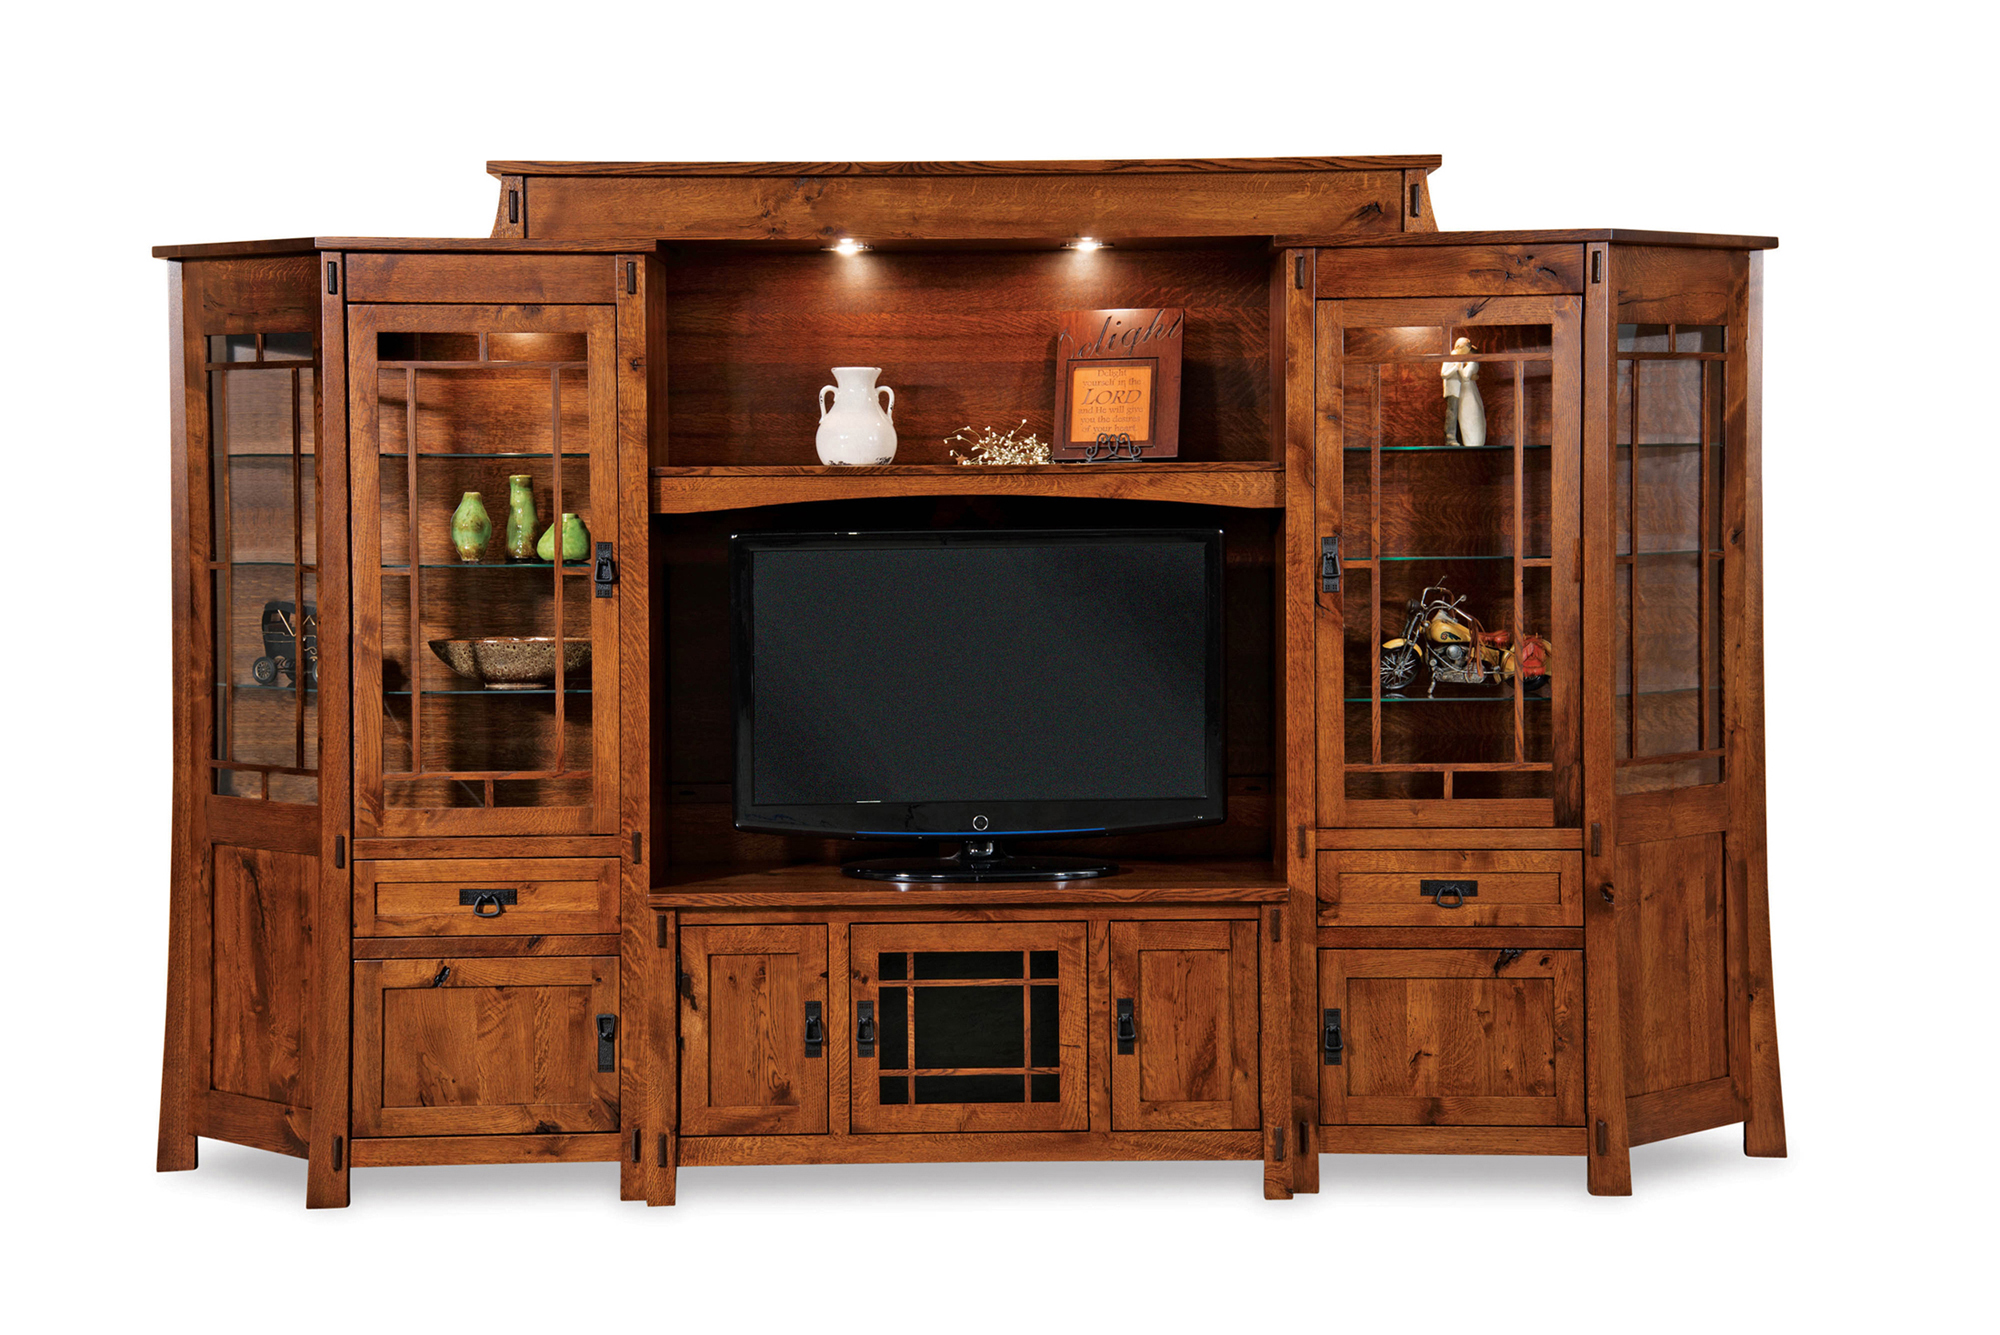 Sofas And Recliners Modesto Home Theater Wall Unit - Amish Furniture Store